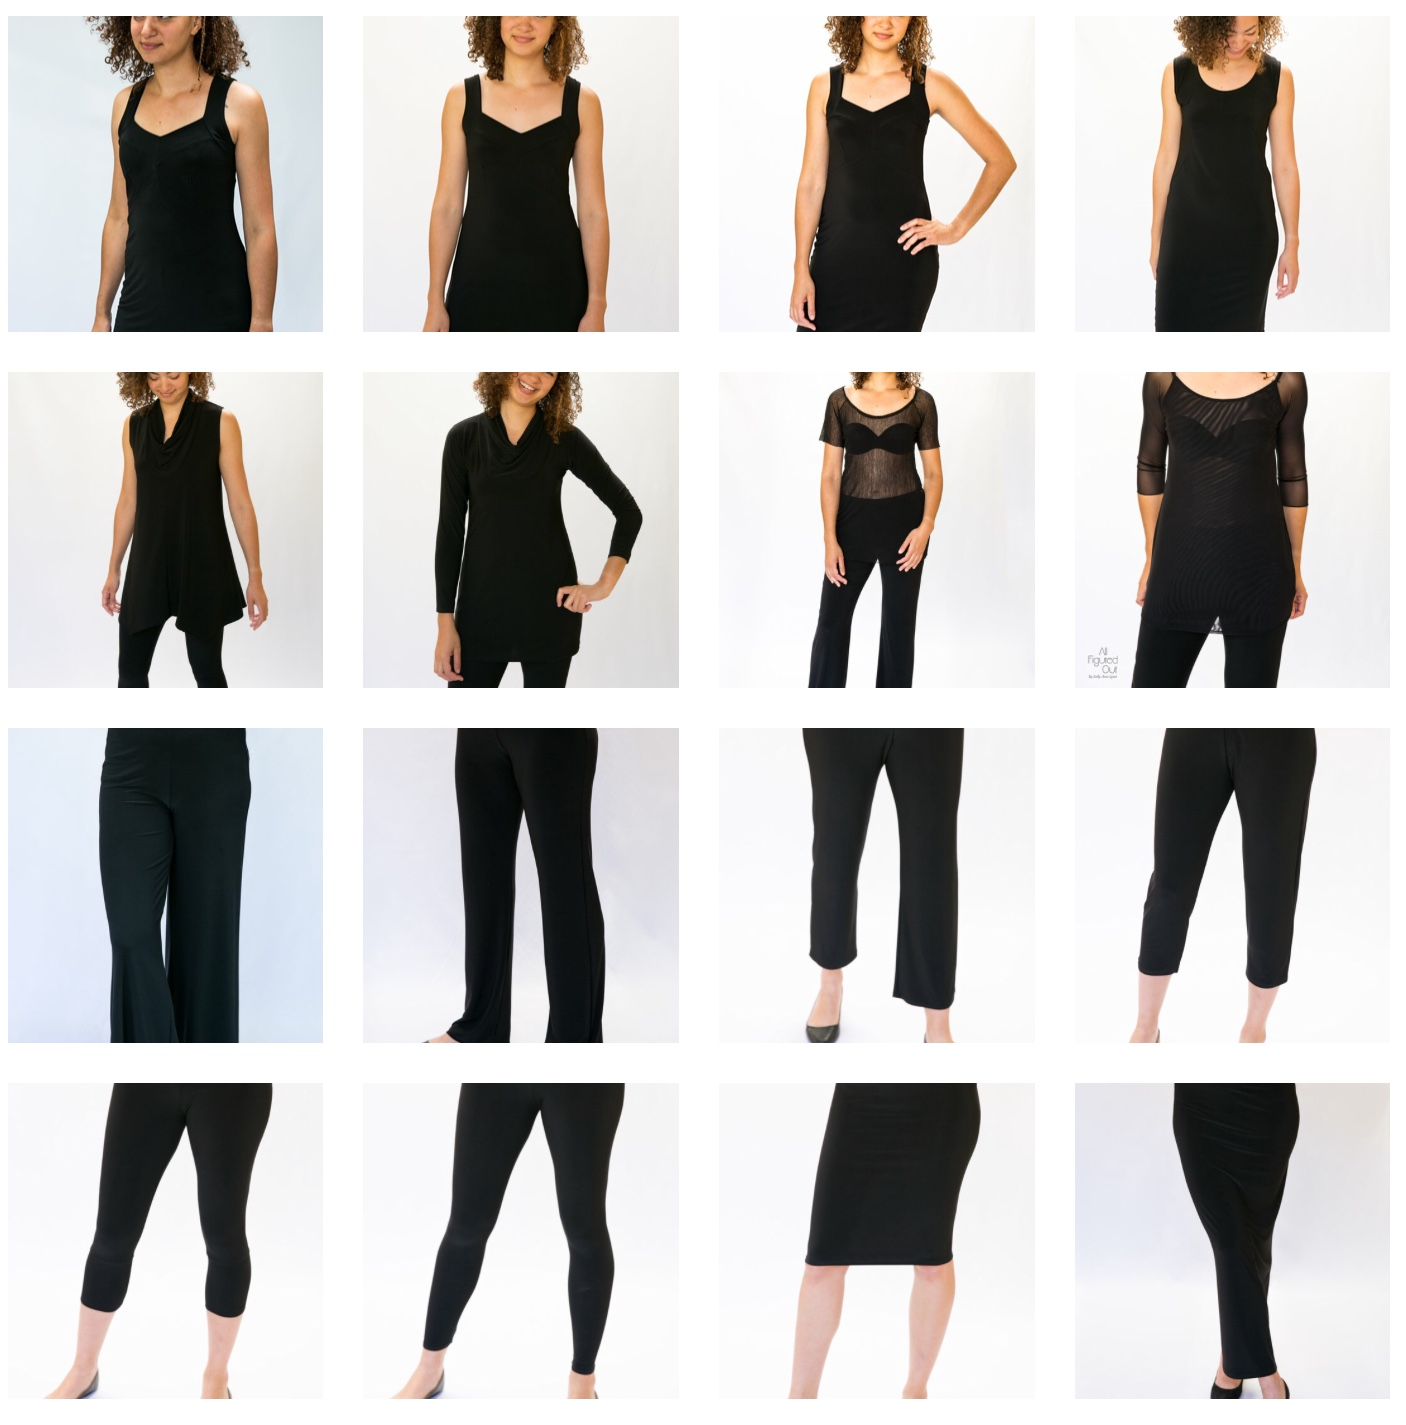 Sallysentials - The Basics - Shop now